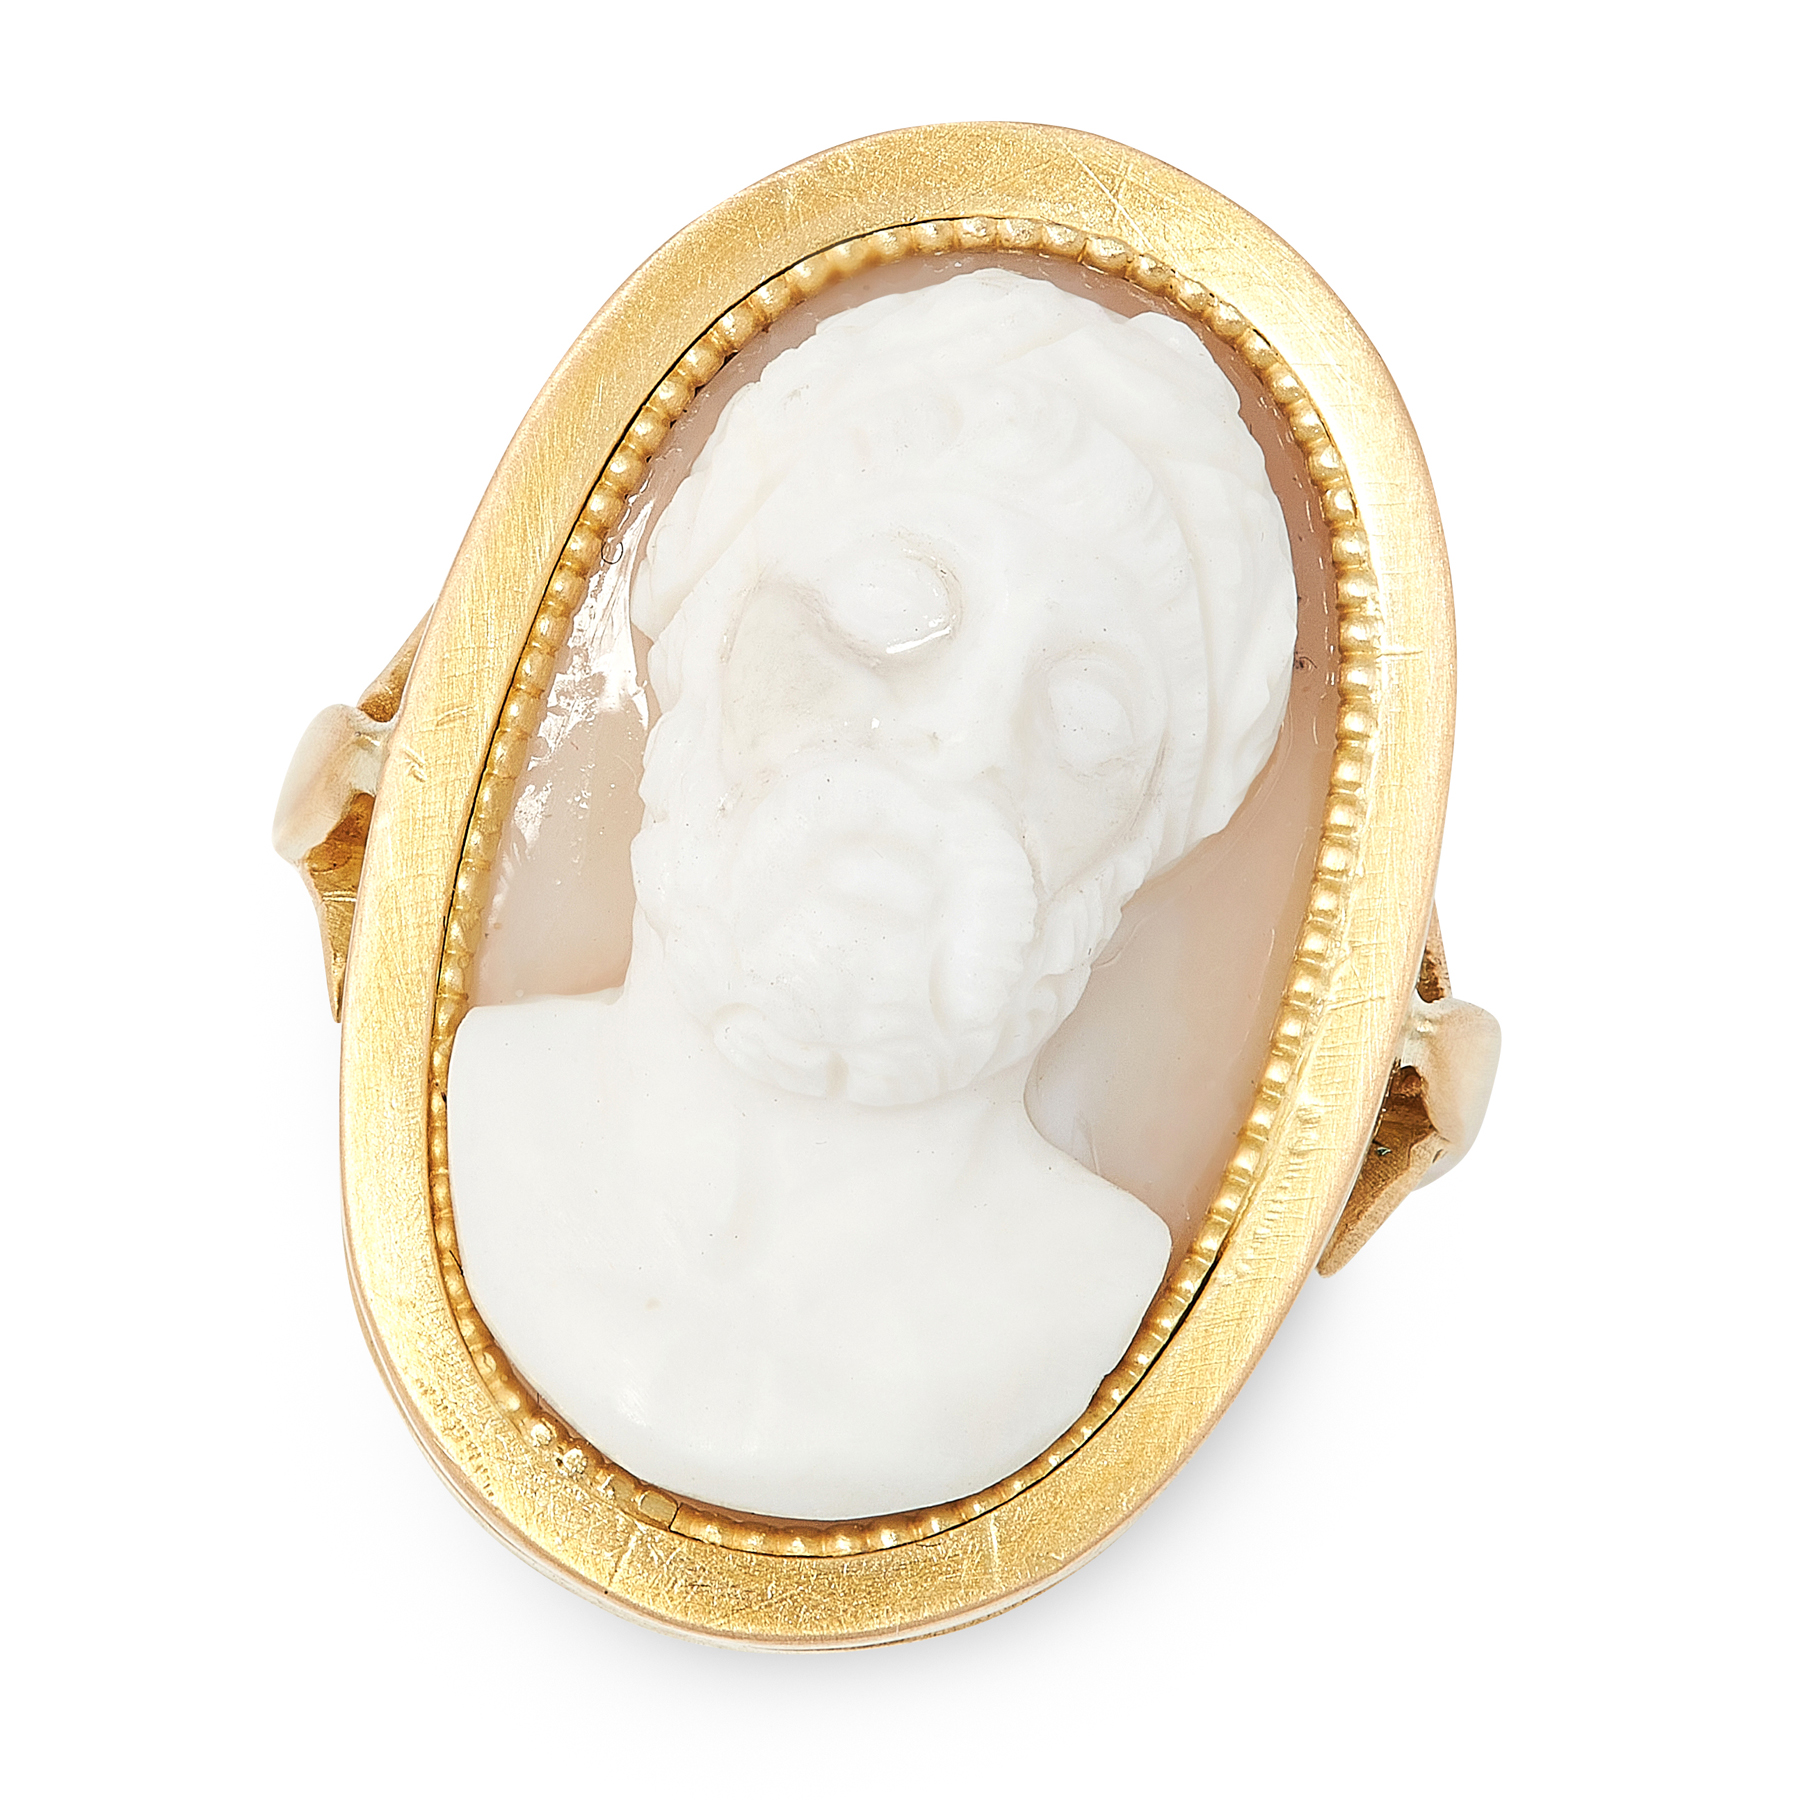 AN ANTIQUE CAMEO RING in high carat yellow gold, set with an oval cameo carved to depict the bust of